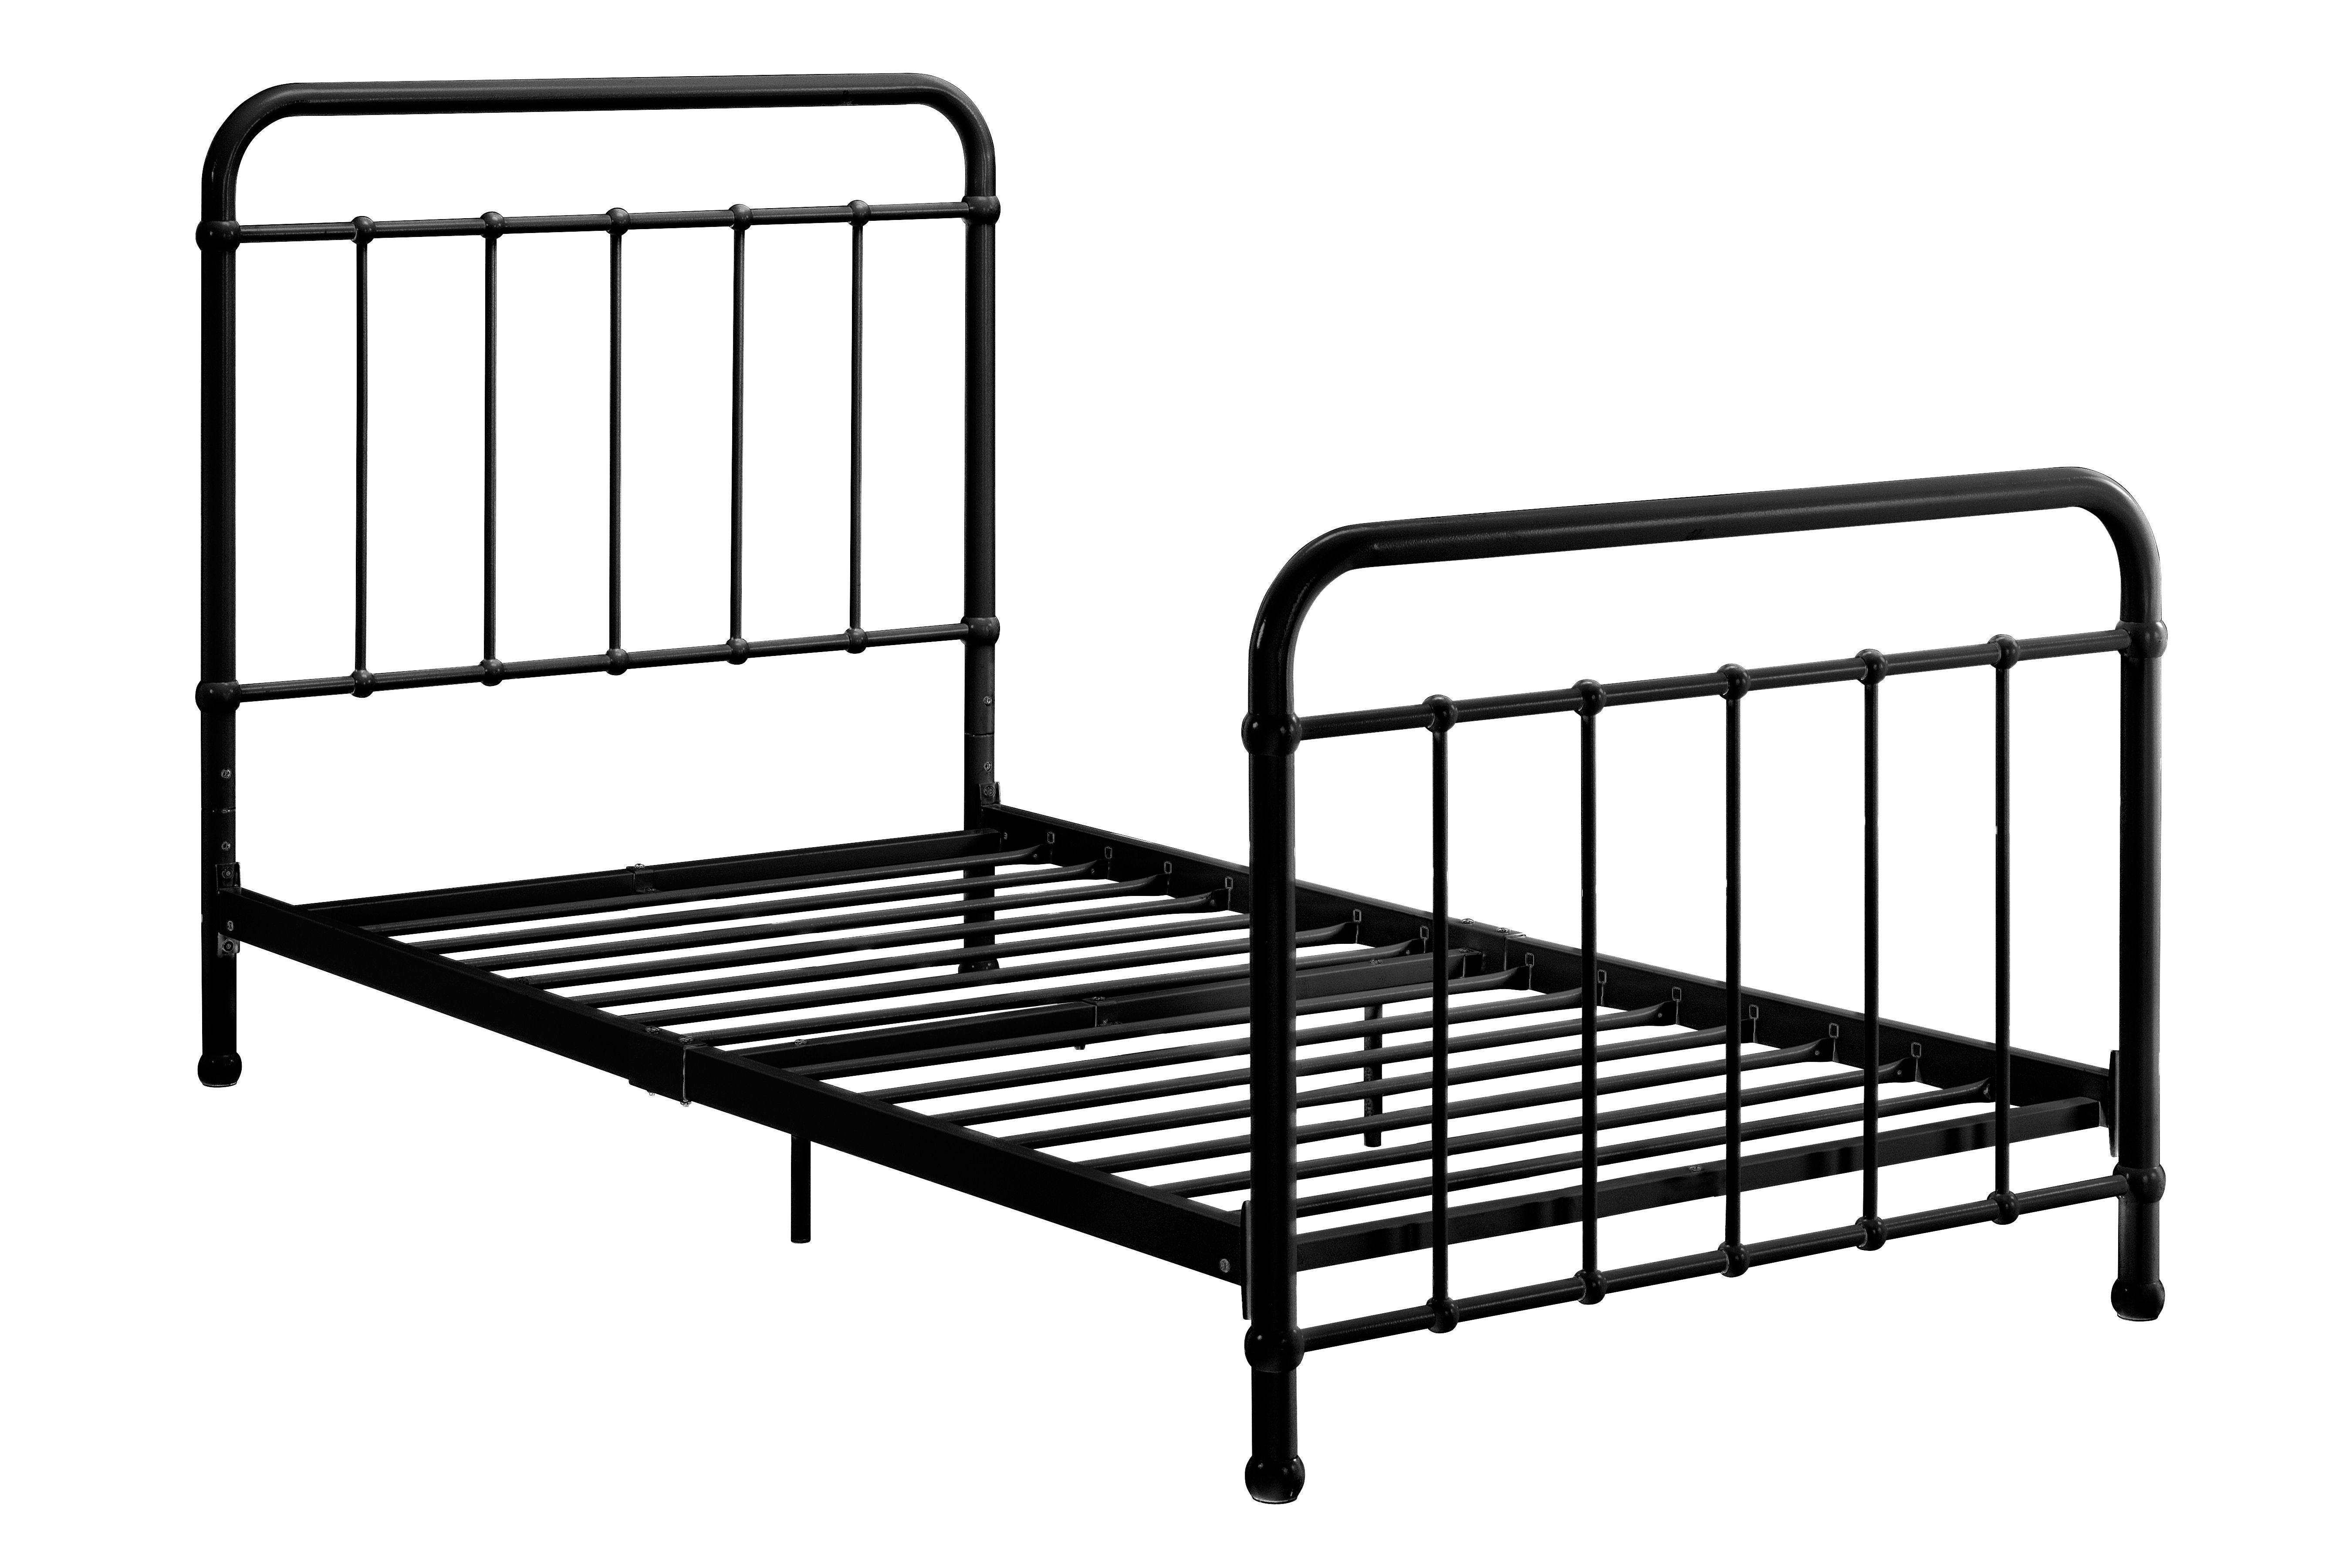 Lynly Iron Twin Bed With Images Iron Metal Bed Iron Bed Frame